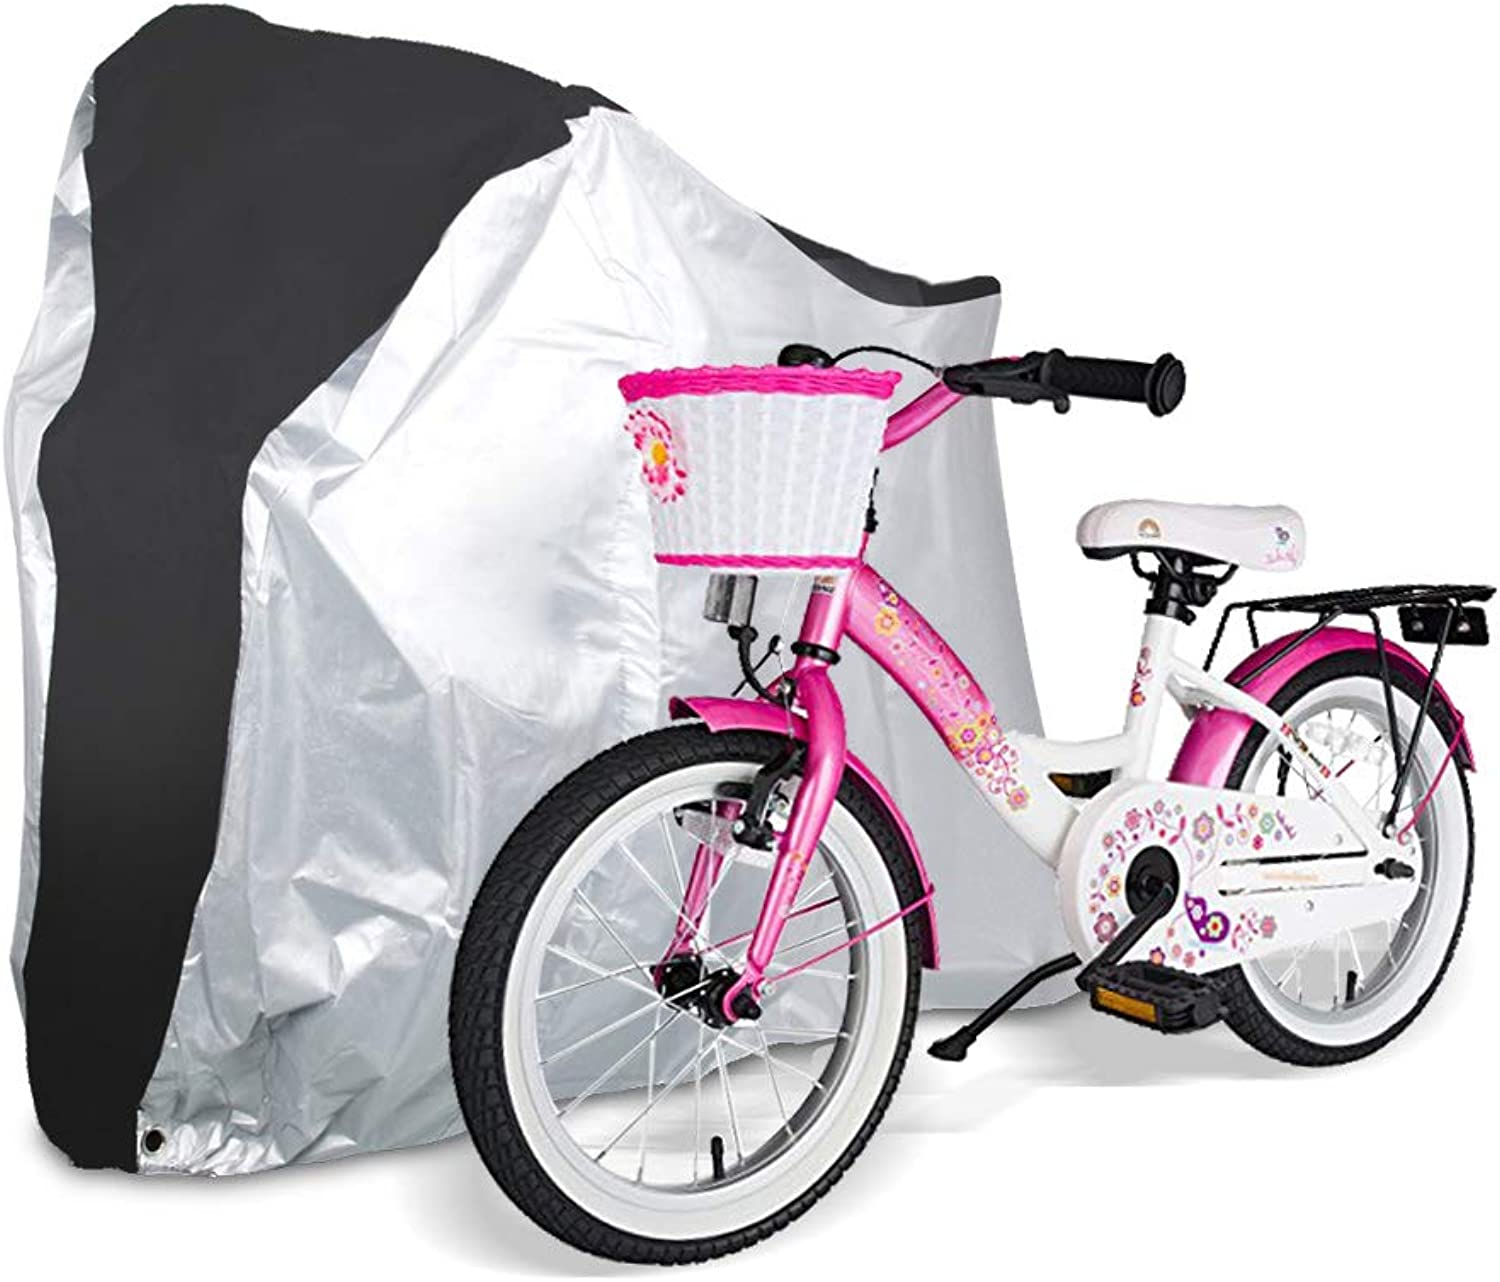 Bicycle Cover - Outdoor Waterproof Anti-Dust Bike Wheel Cover - Foldable Bike Storage Bag with Anti-Theft Lock Holes - Large Size Bike Seat Cover for Kids Bike Mountain Bike Road Bike